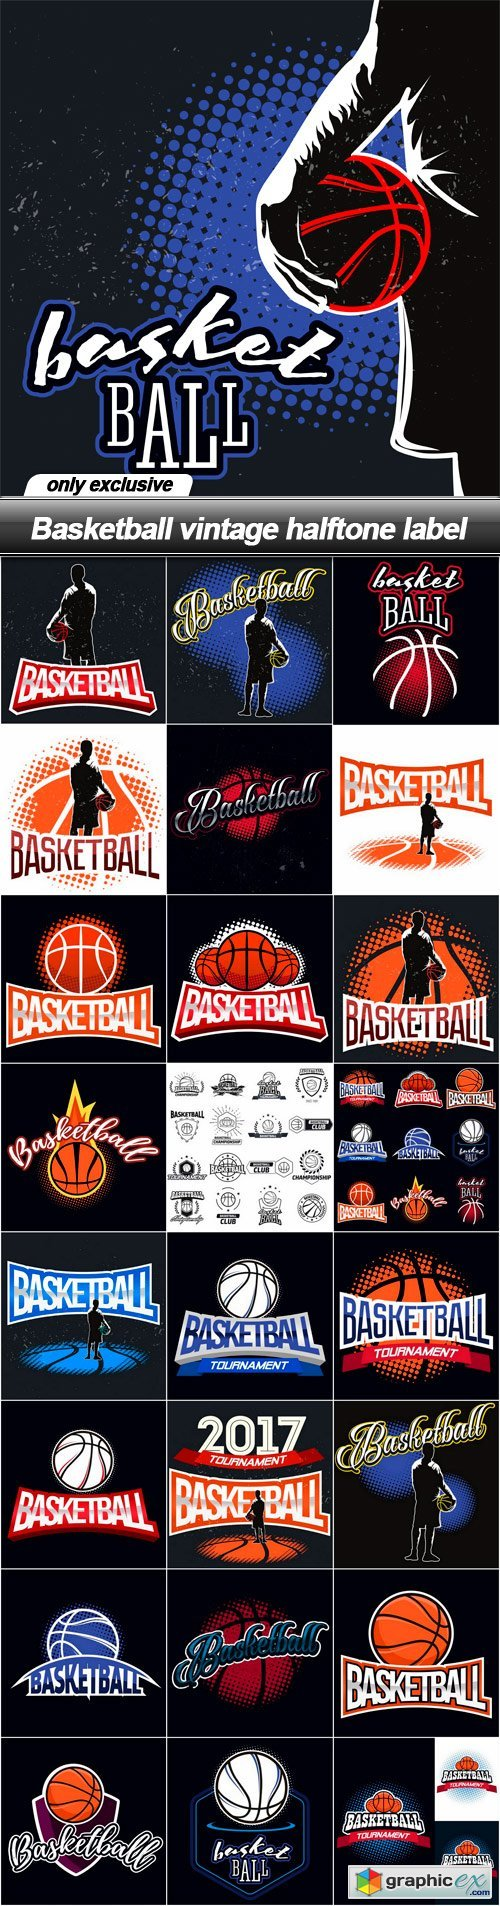 Basketball vintage halftone label - 25 EPS